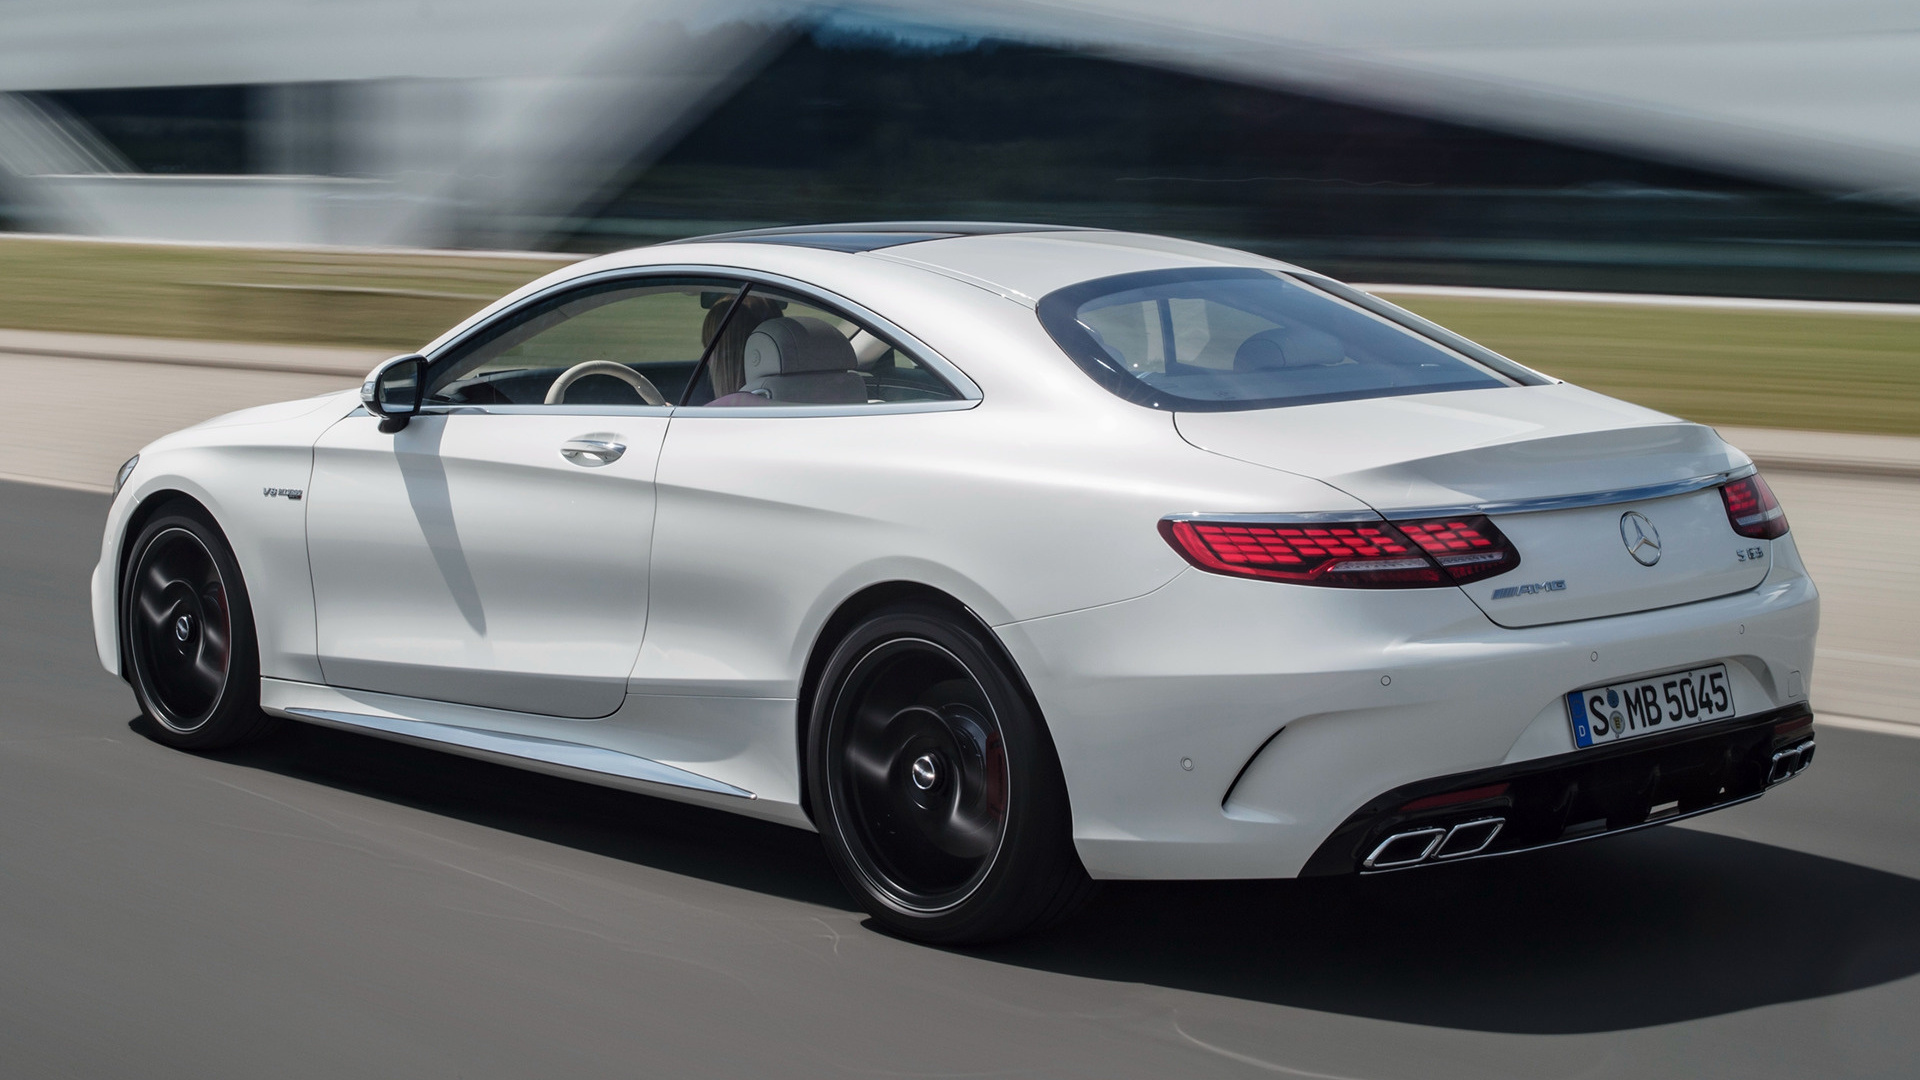 Mercedes C Class Coupe >> 2018 Mercedes-AMG S 63 Coupe - Wallpapers and HD Images ...